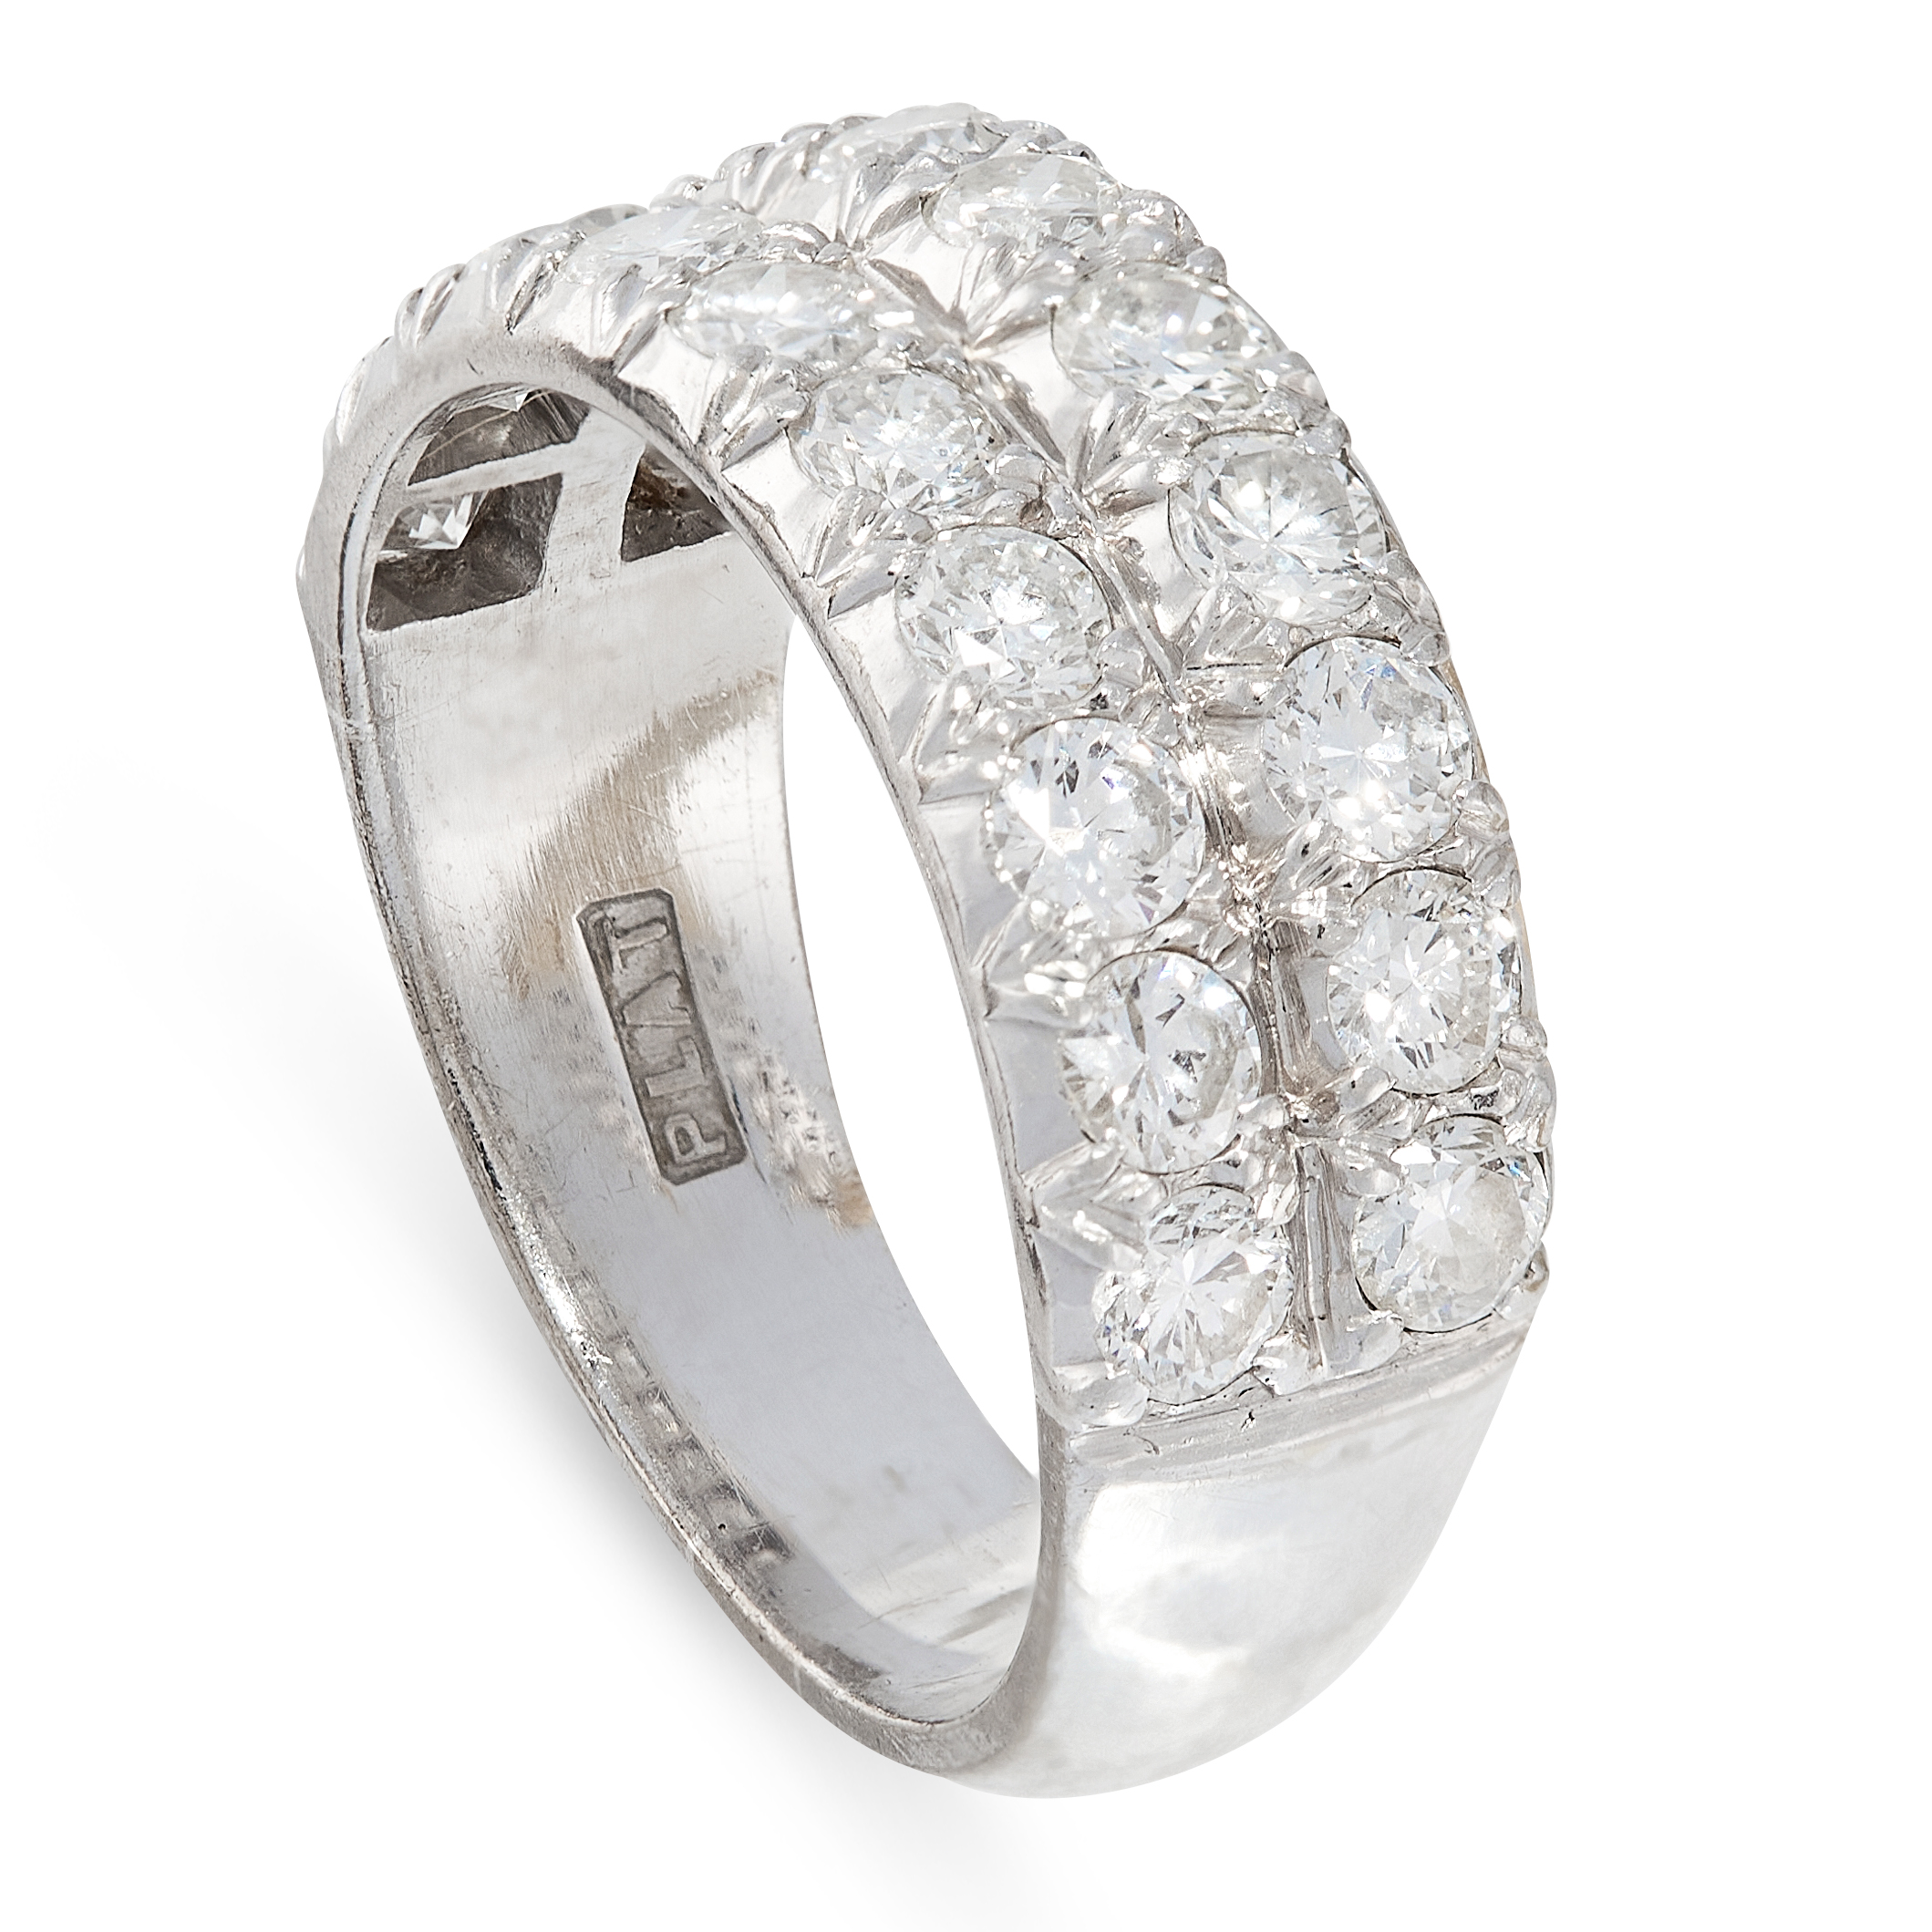 A DIAMOND DRESS RING in 18ct white gold and platinum, the band half set with two rows of round cut - Image 2 of 2